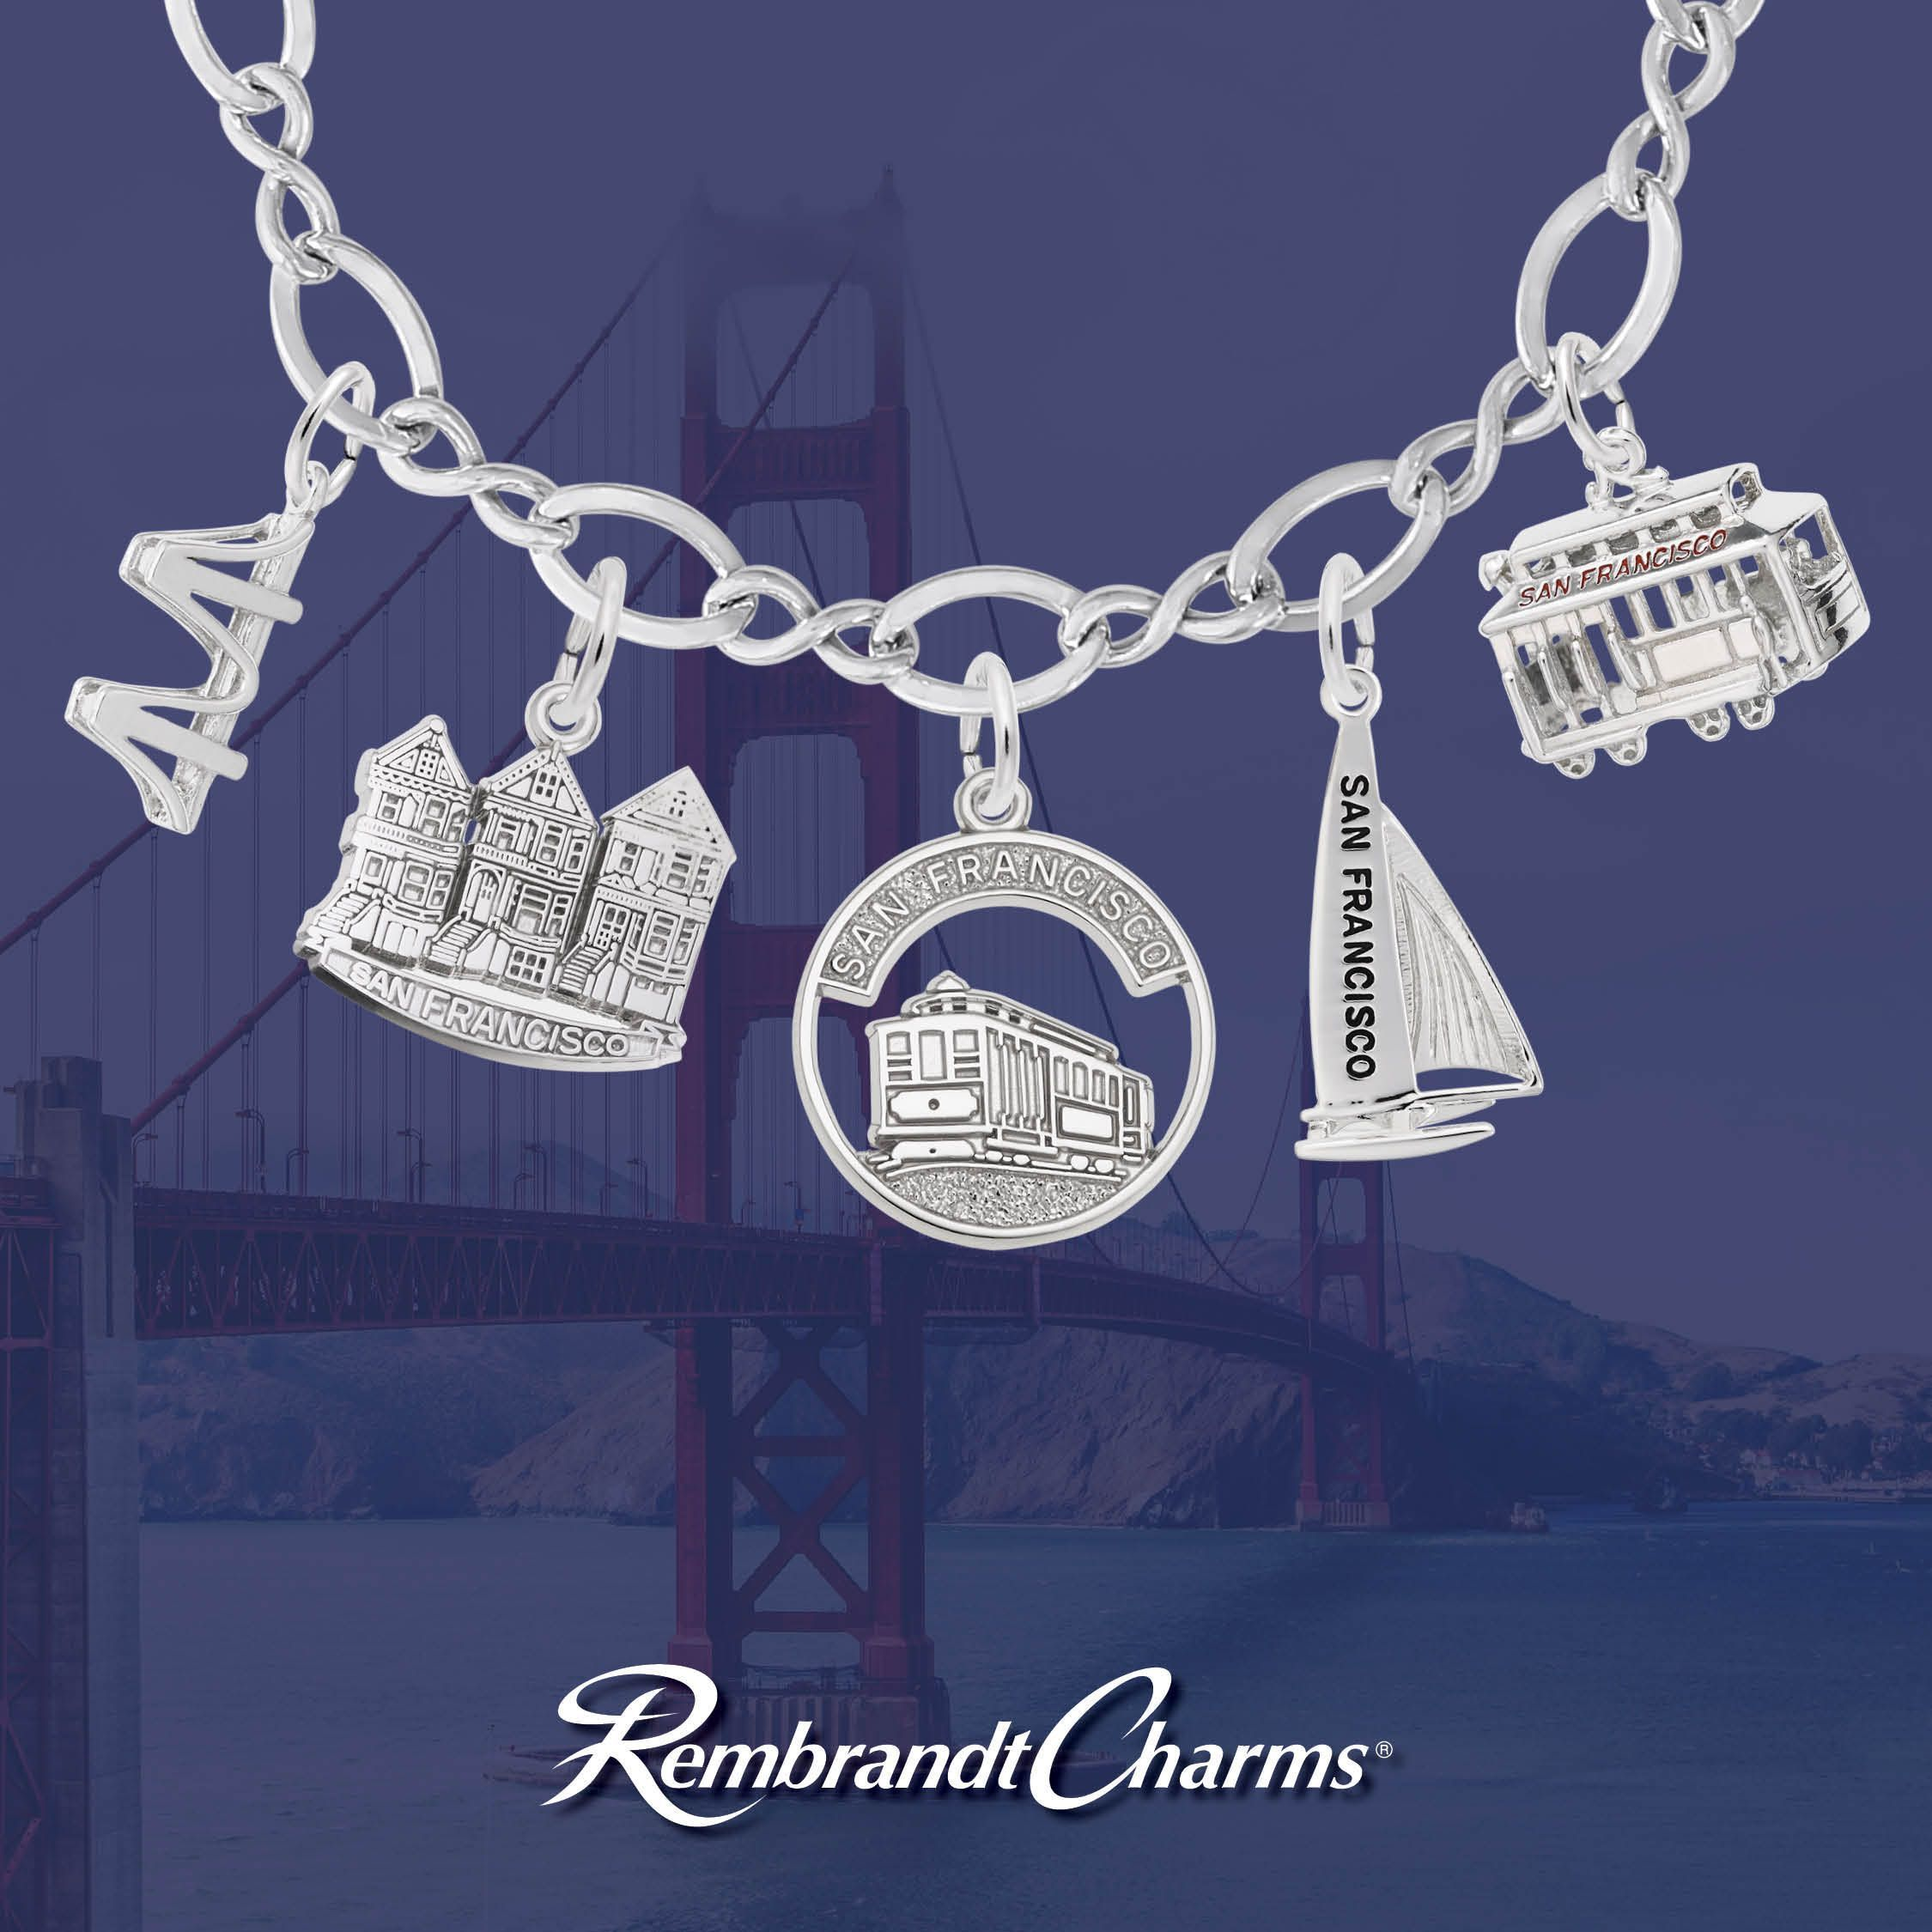 Rembrandt Charms Hawaii Engravable